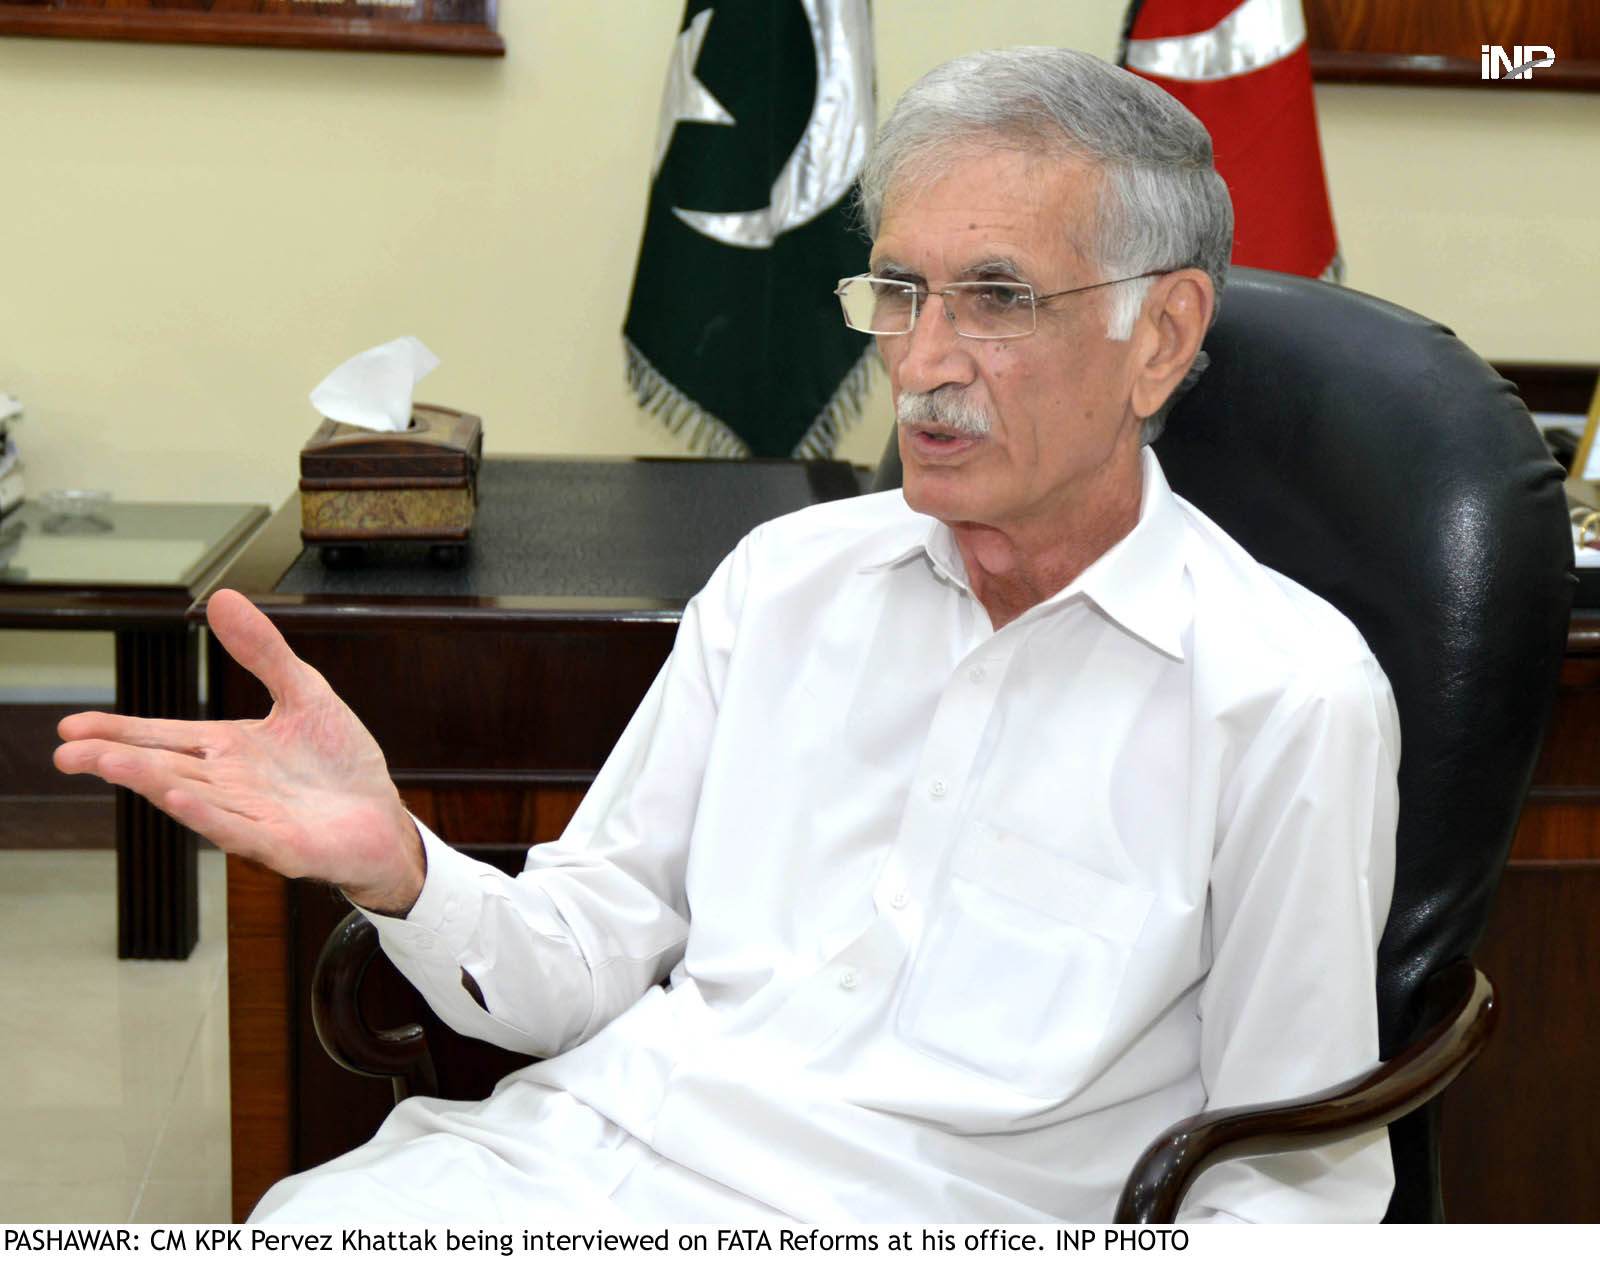 k p cm to decide fate of bank of khyber md or risk losing ji alliance